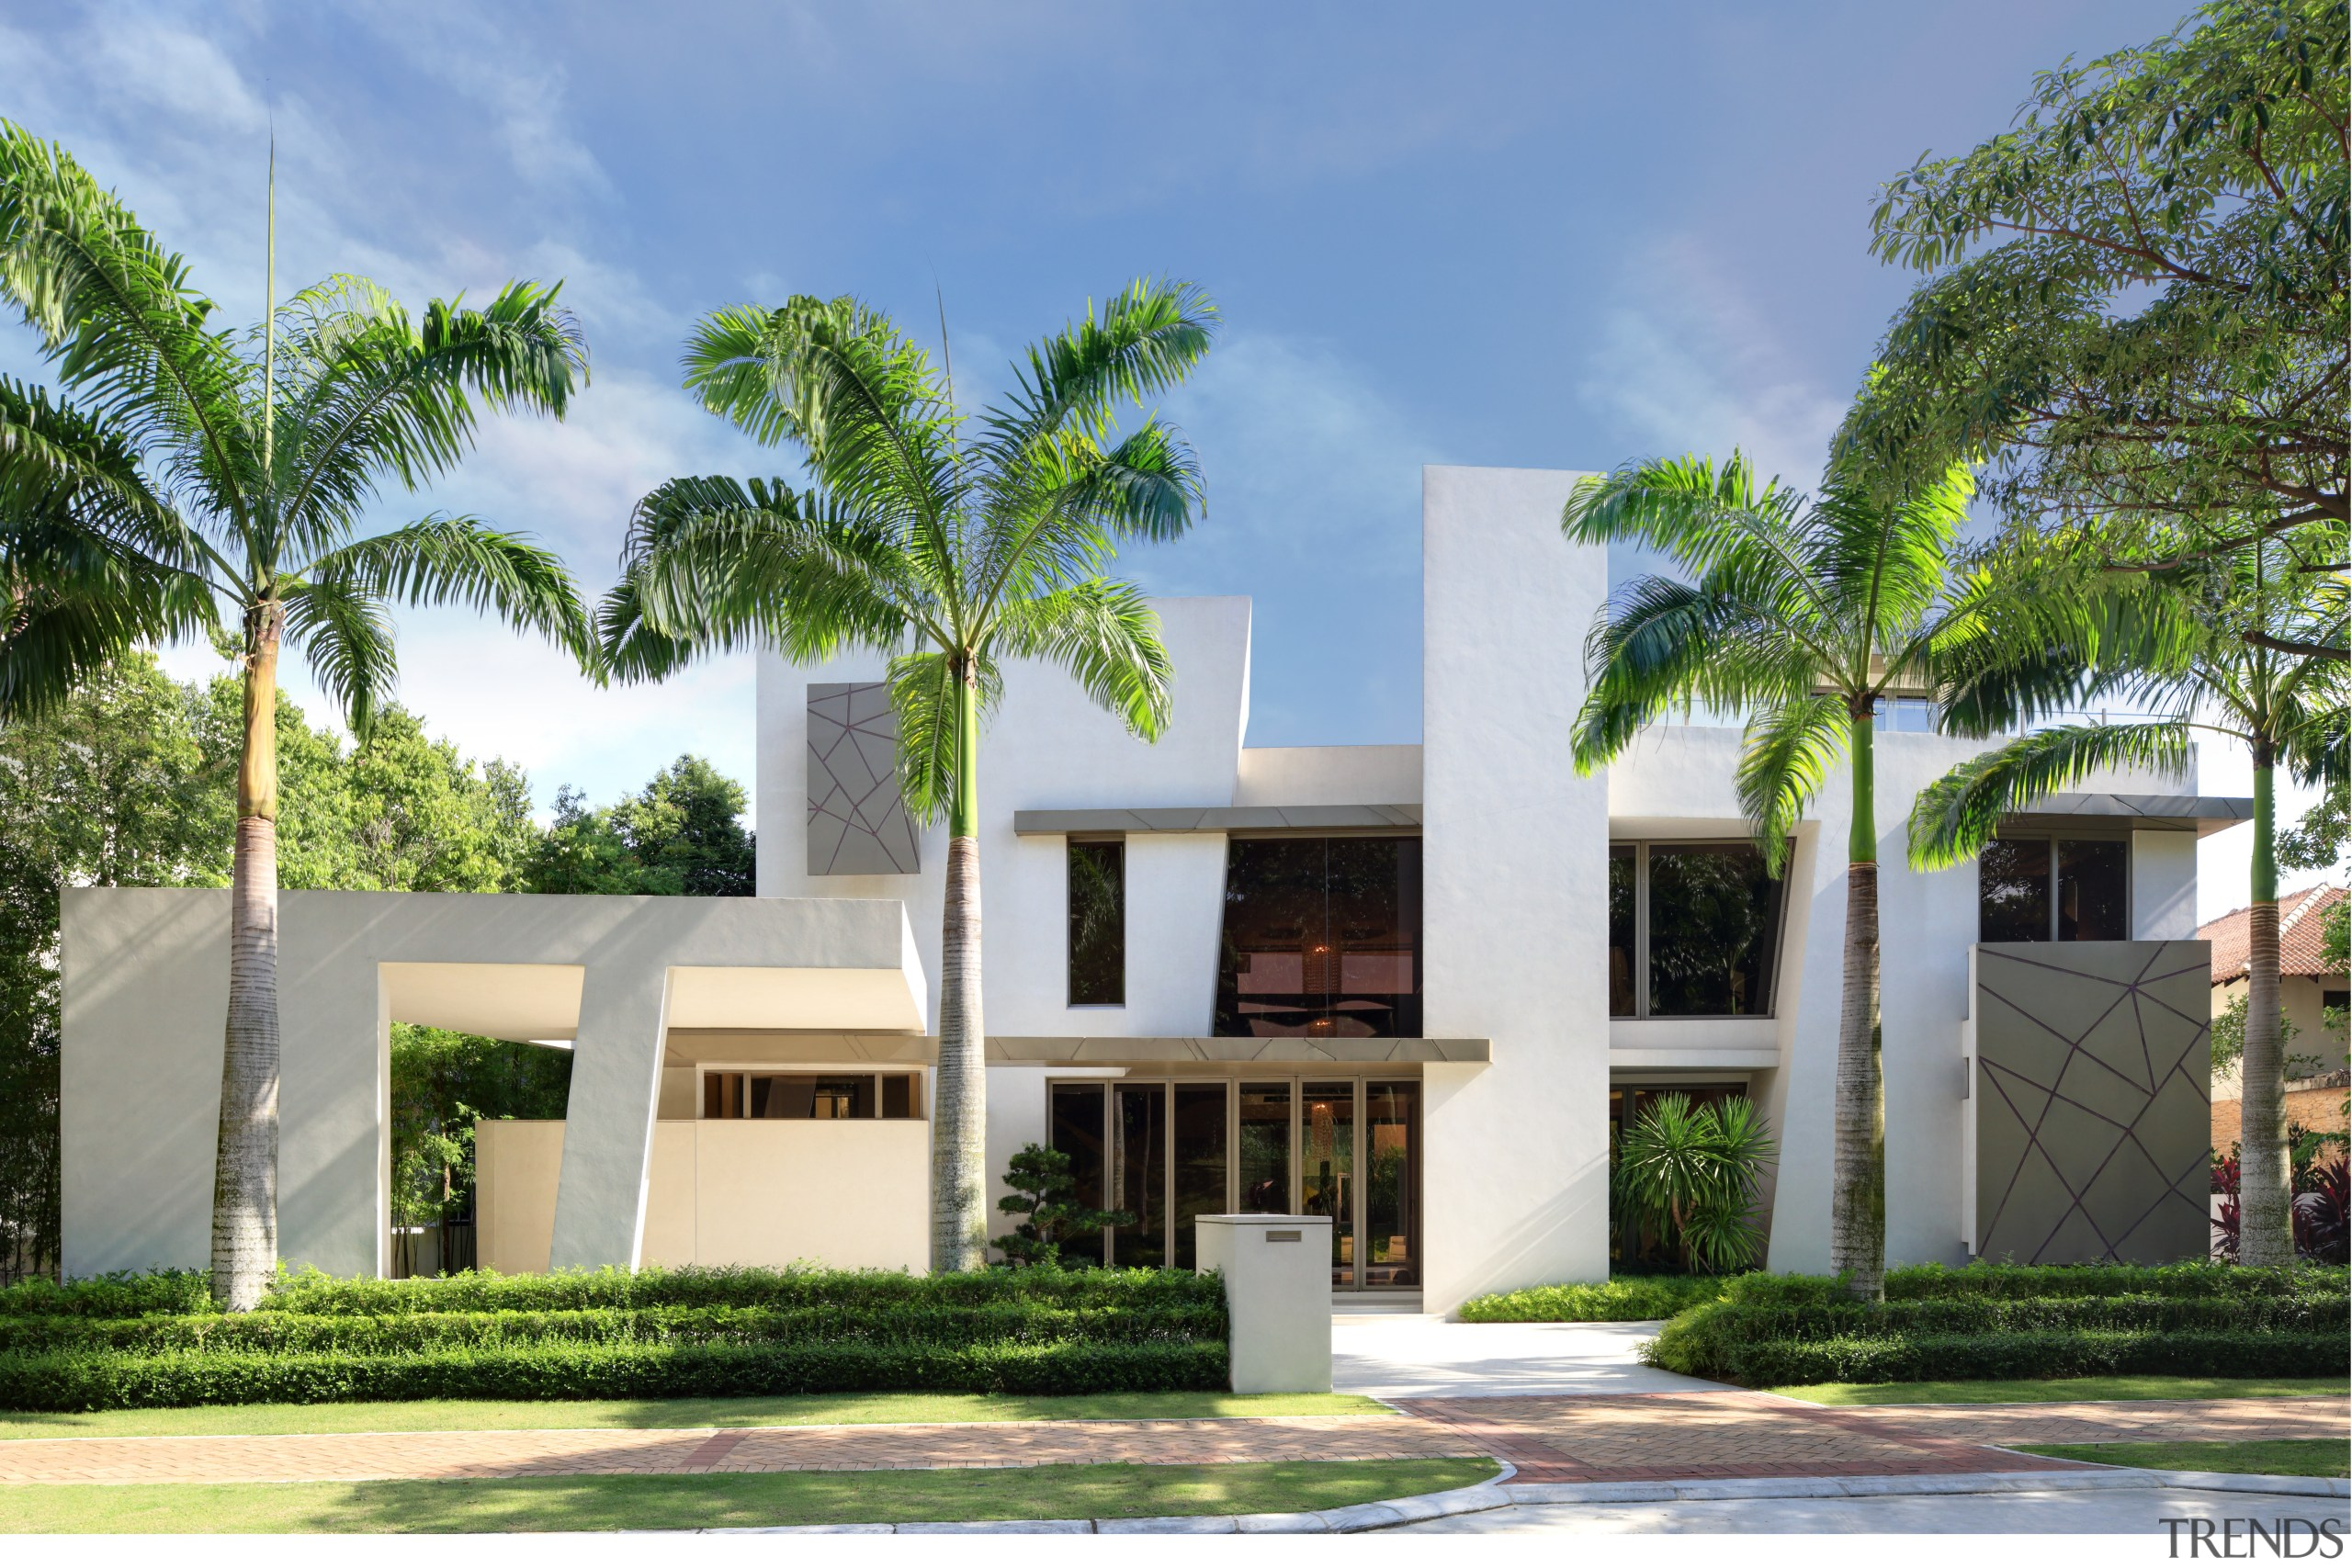 A picture of white stucco forms and dark architecture, arecales, building, condominium, elevation, estate, facade, home, house, official residence, palm tree, property, real estate, residential area, villa